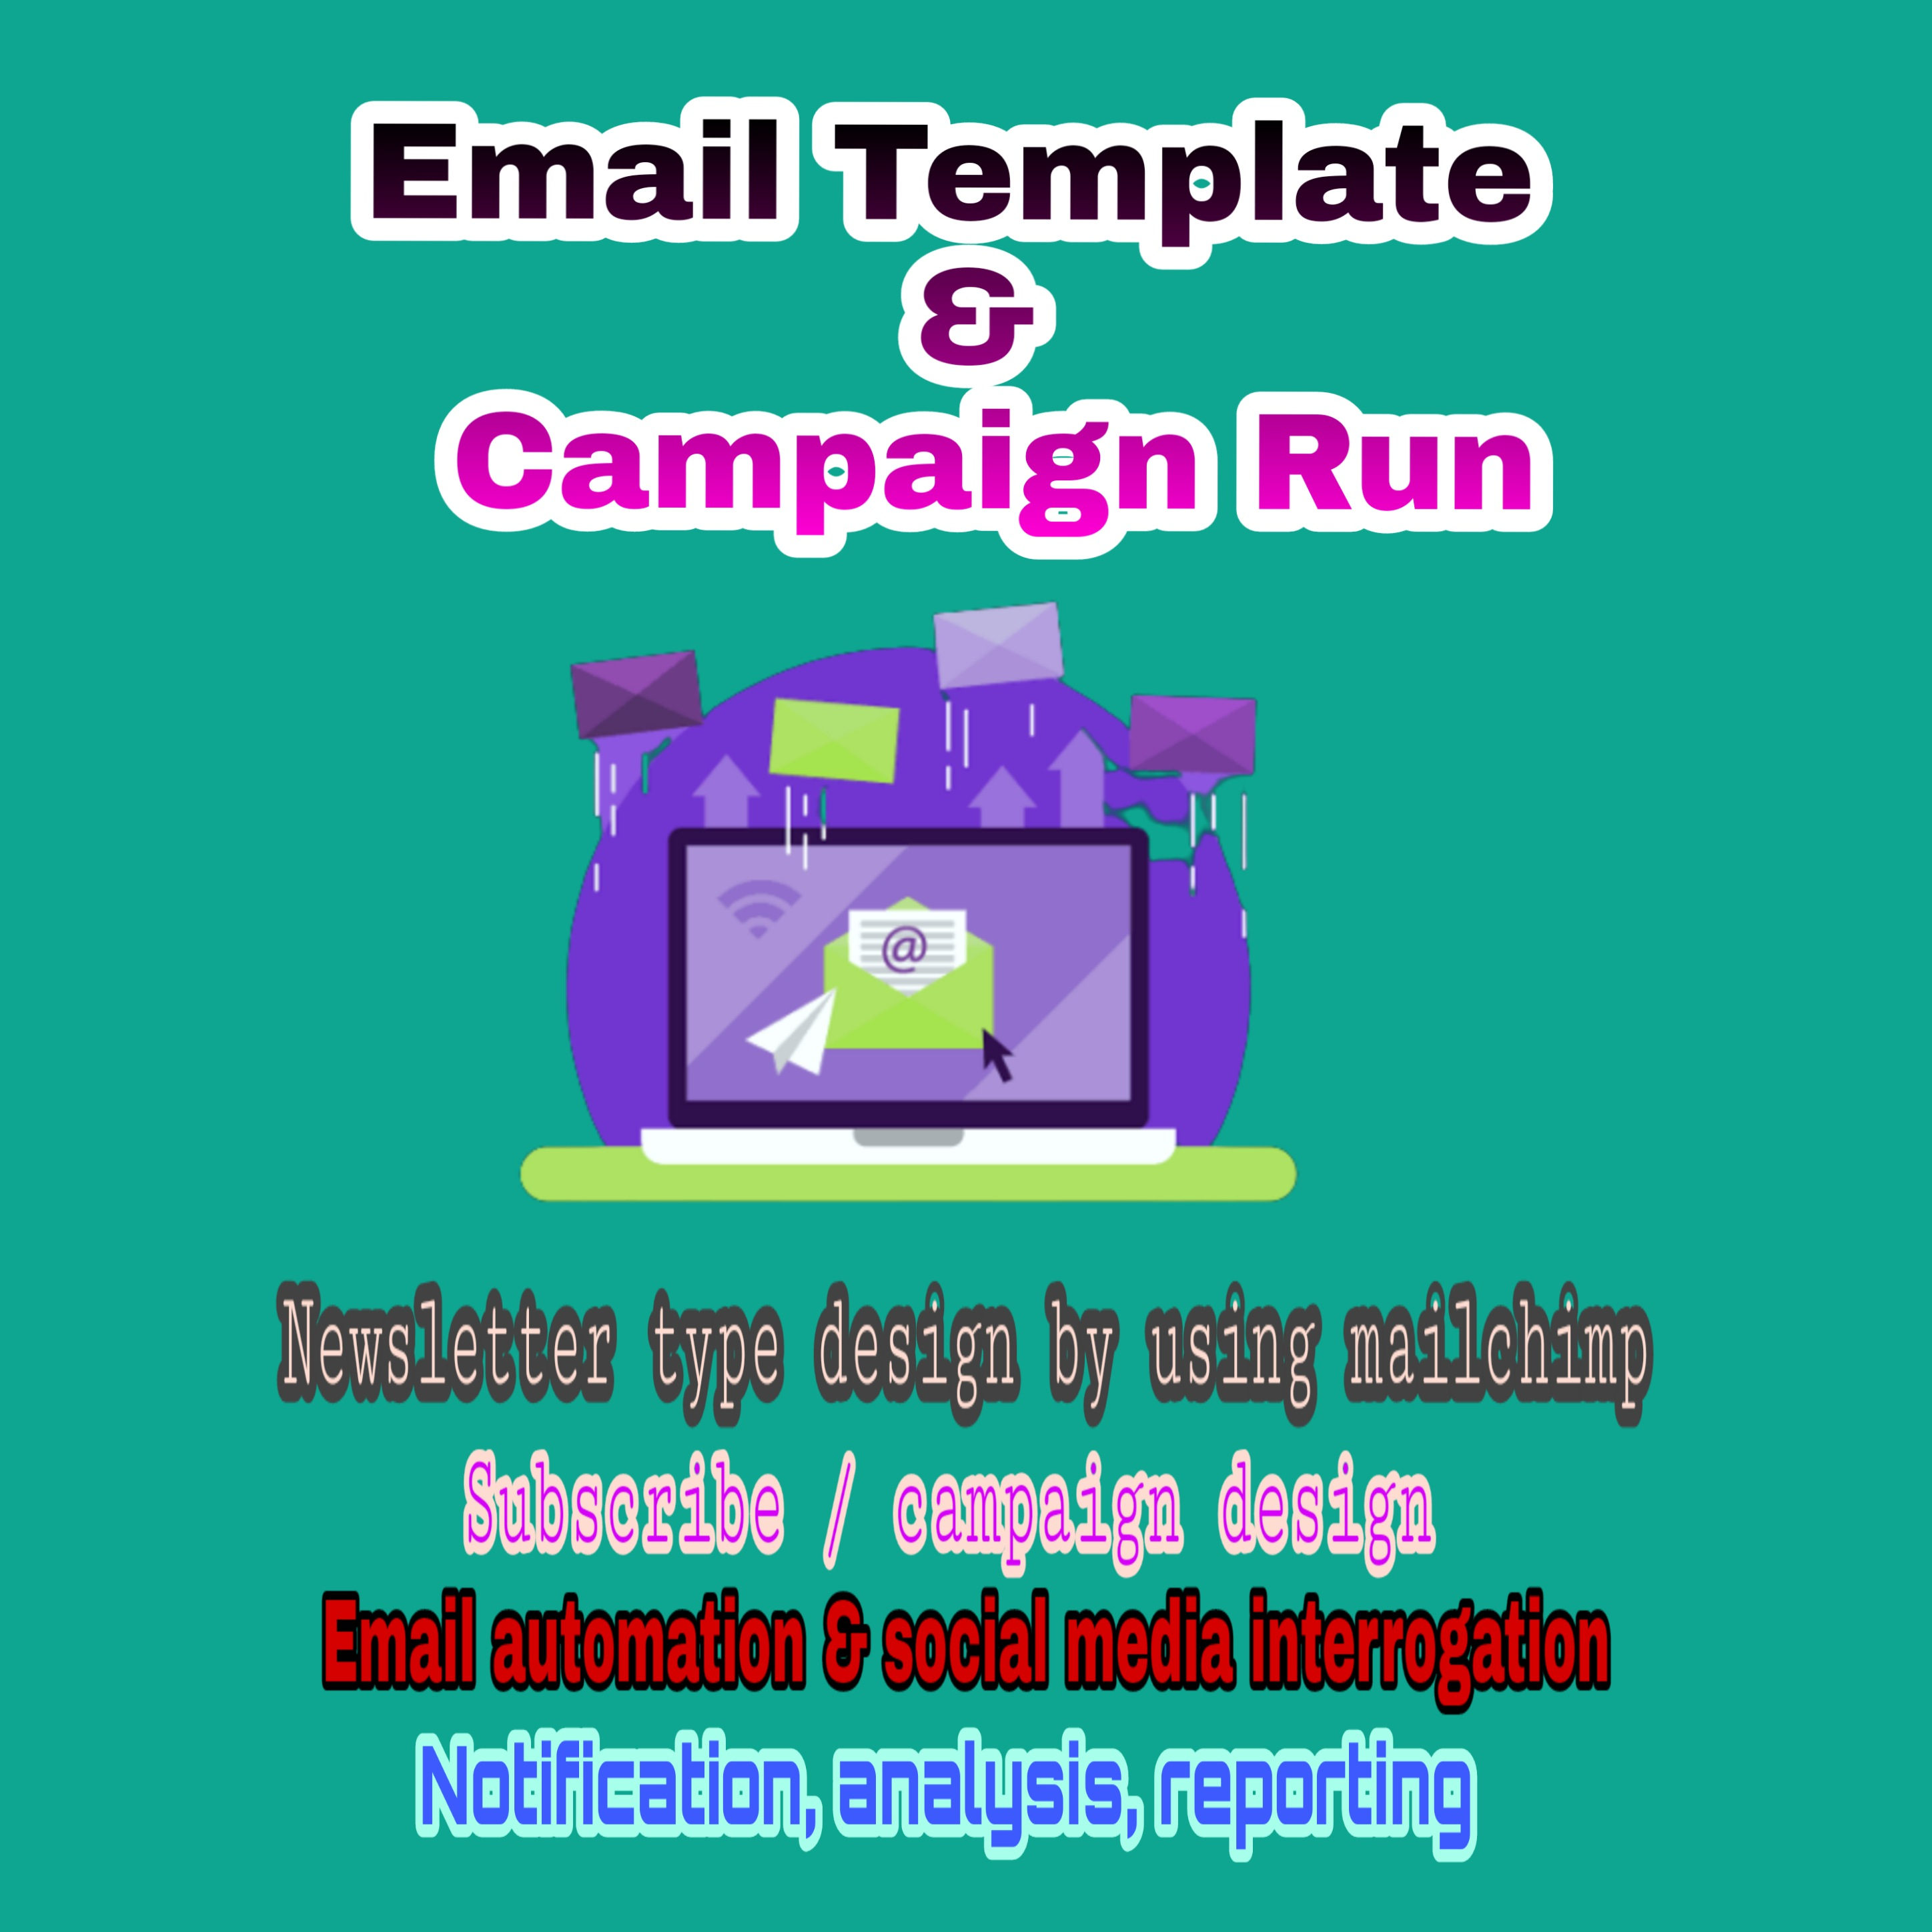 I can create mailchimp email template